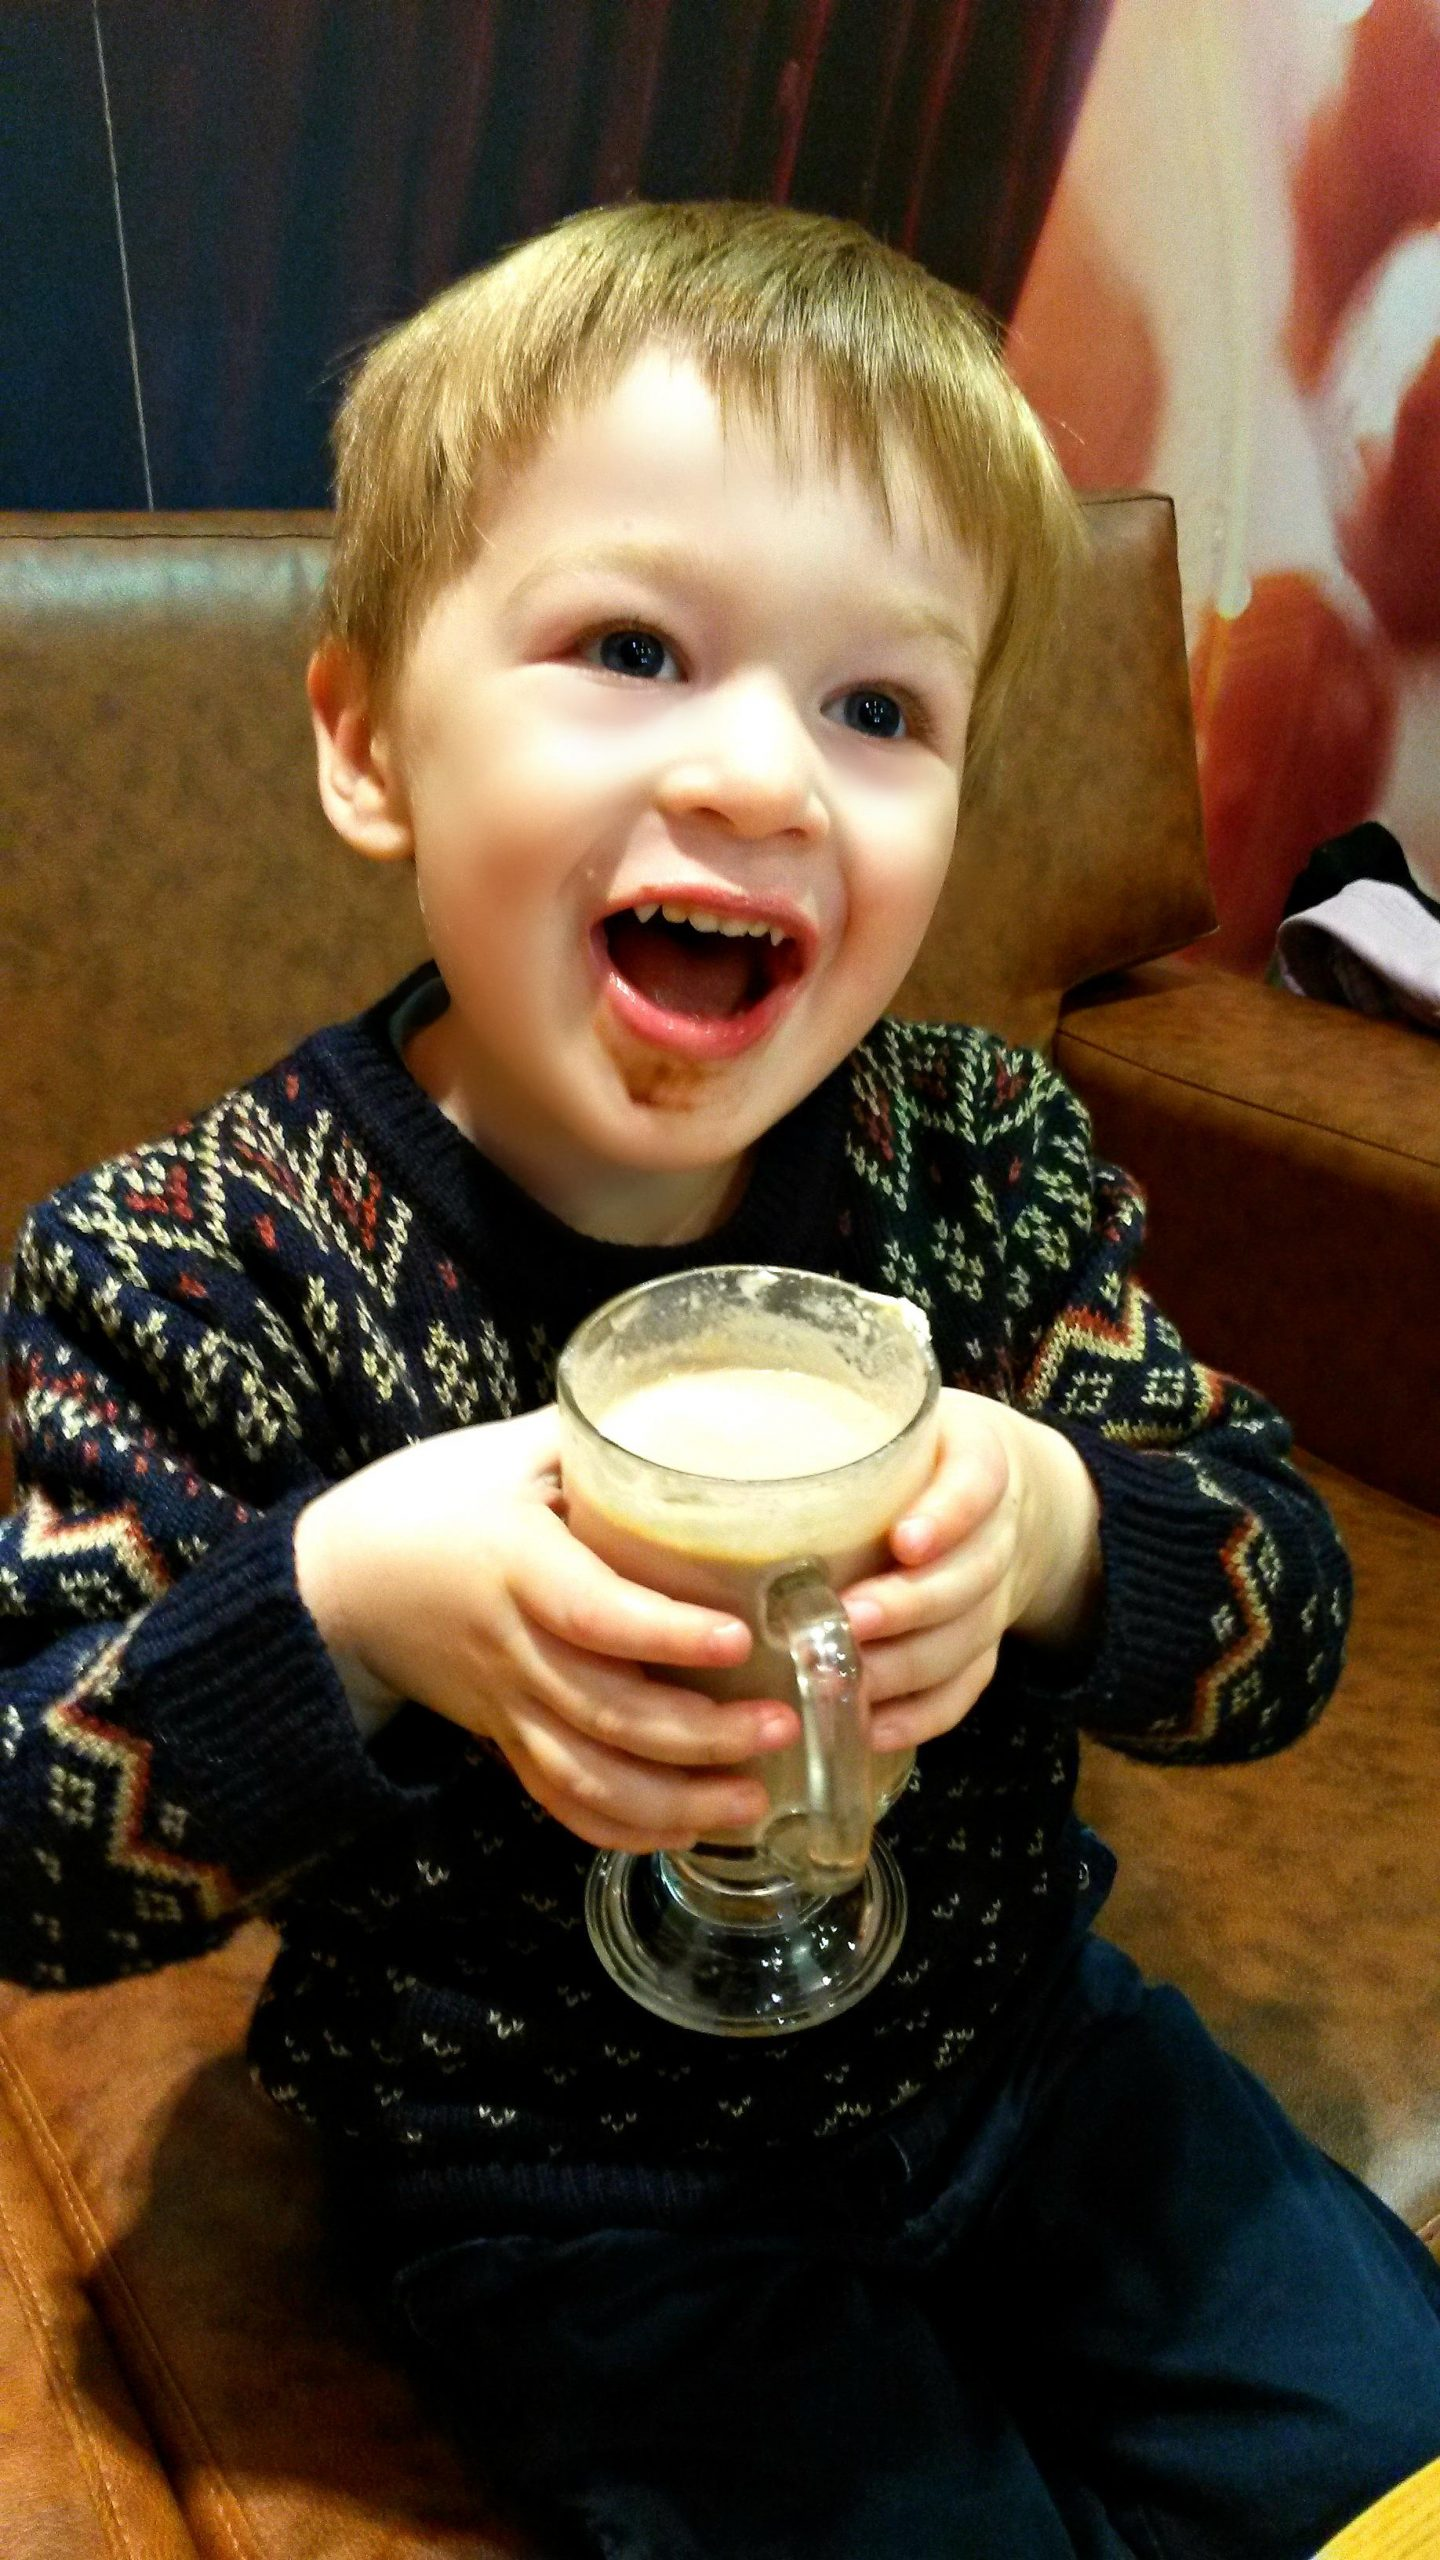 Little boy holding a cup and smiling